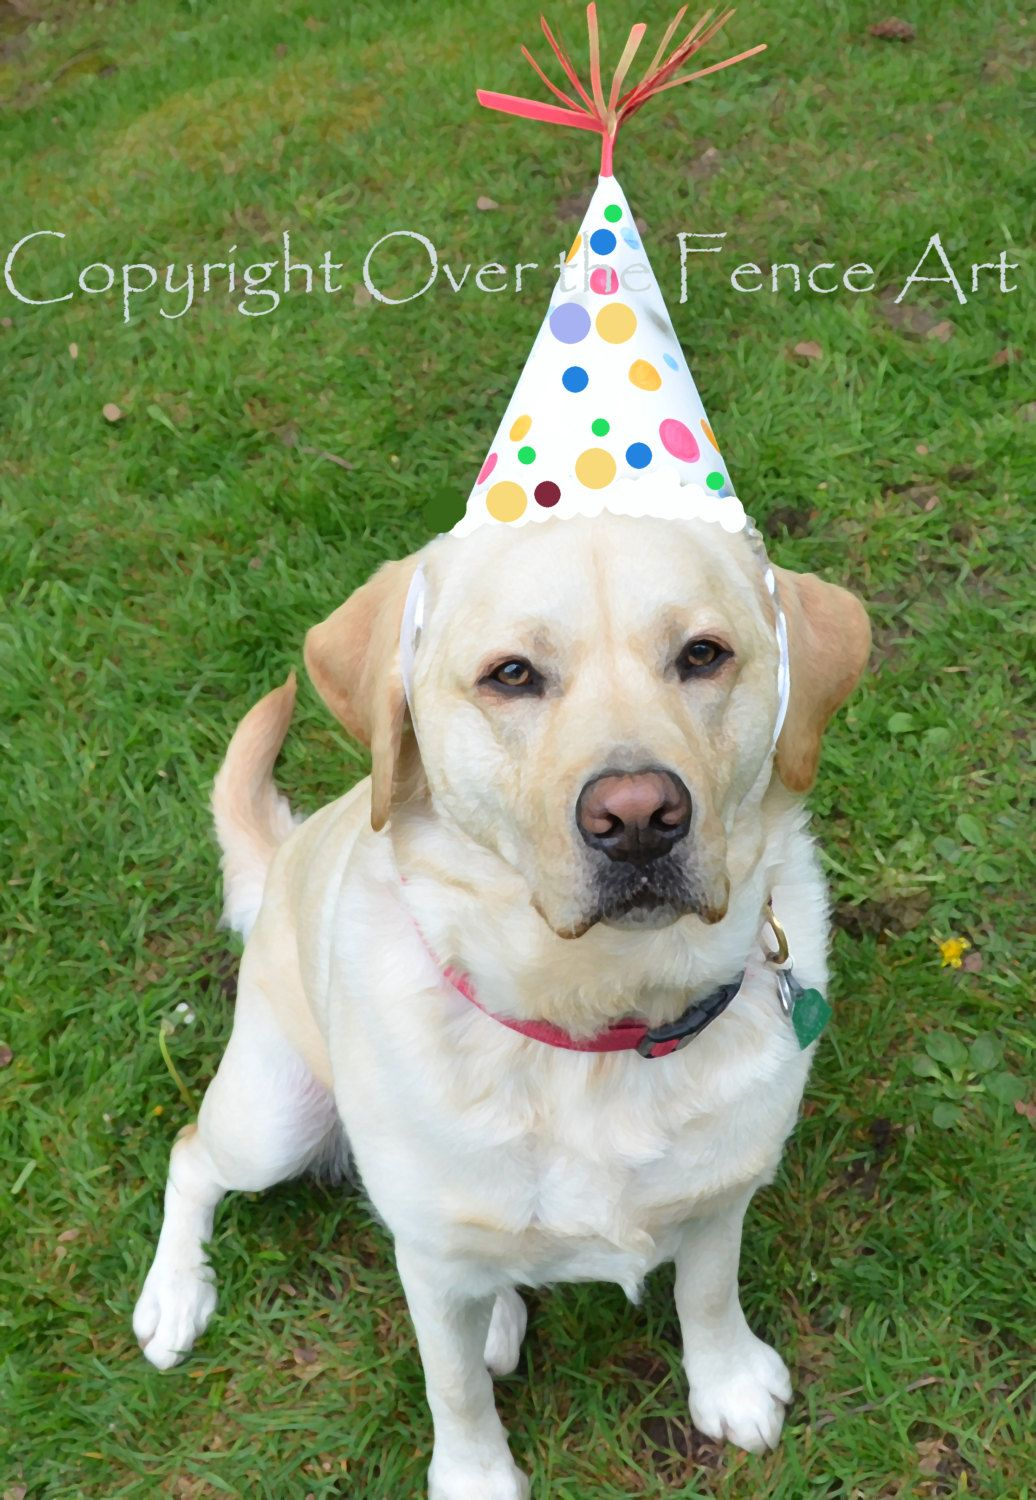 Dog Birthday Card YELLOW LABRADOR PUPPY With Happy Wishes Greeting Portrait Art By Overthefenceart On Etsy